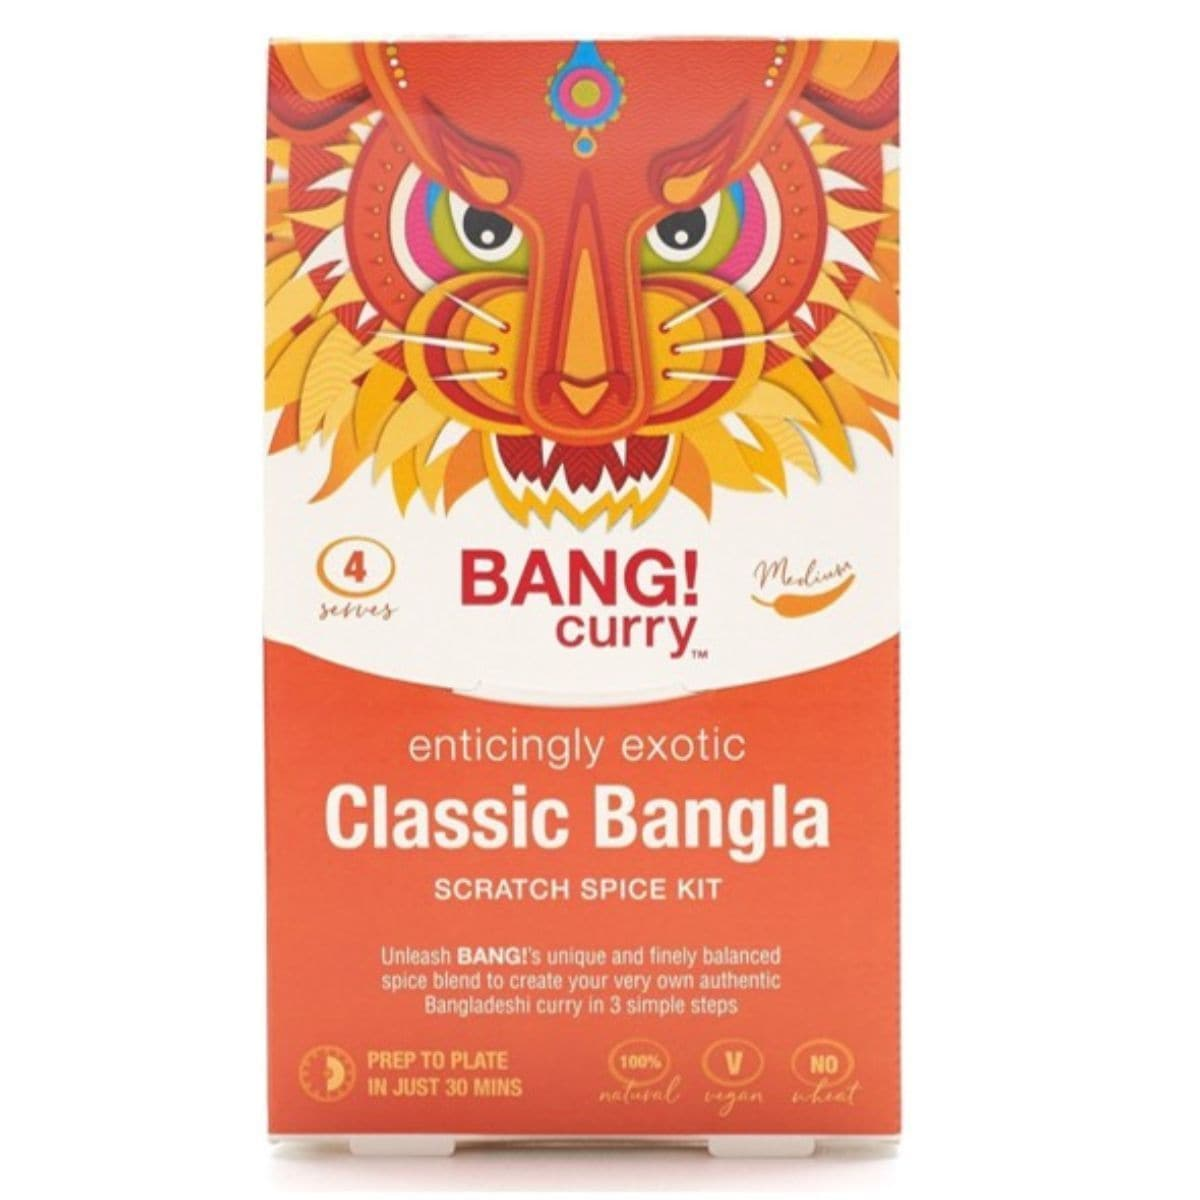 Bang Curry Classic Bangla Scratch Spice Kit - 24g - SoulBia